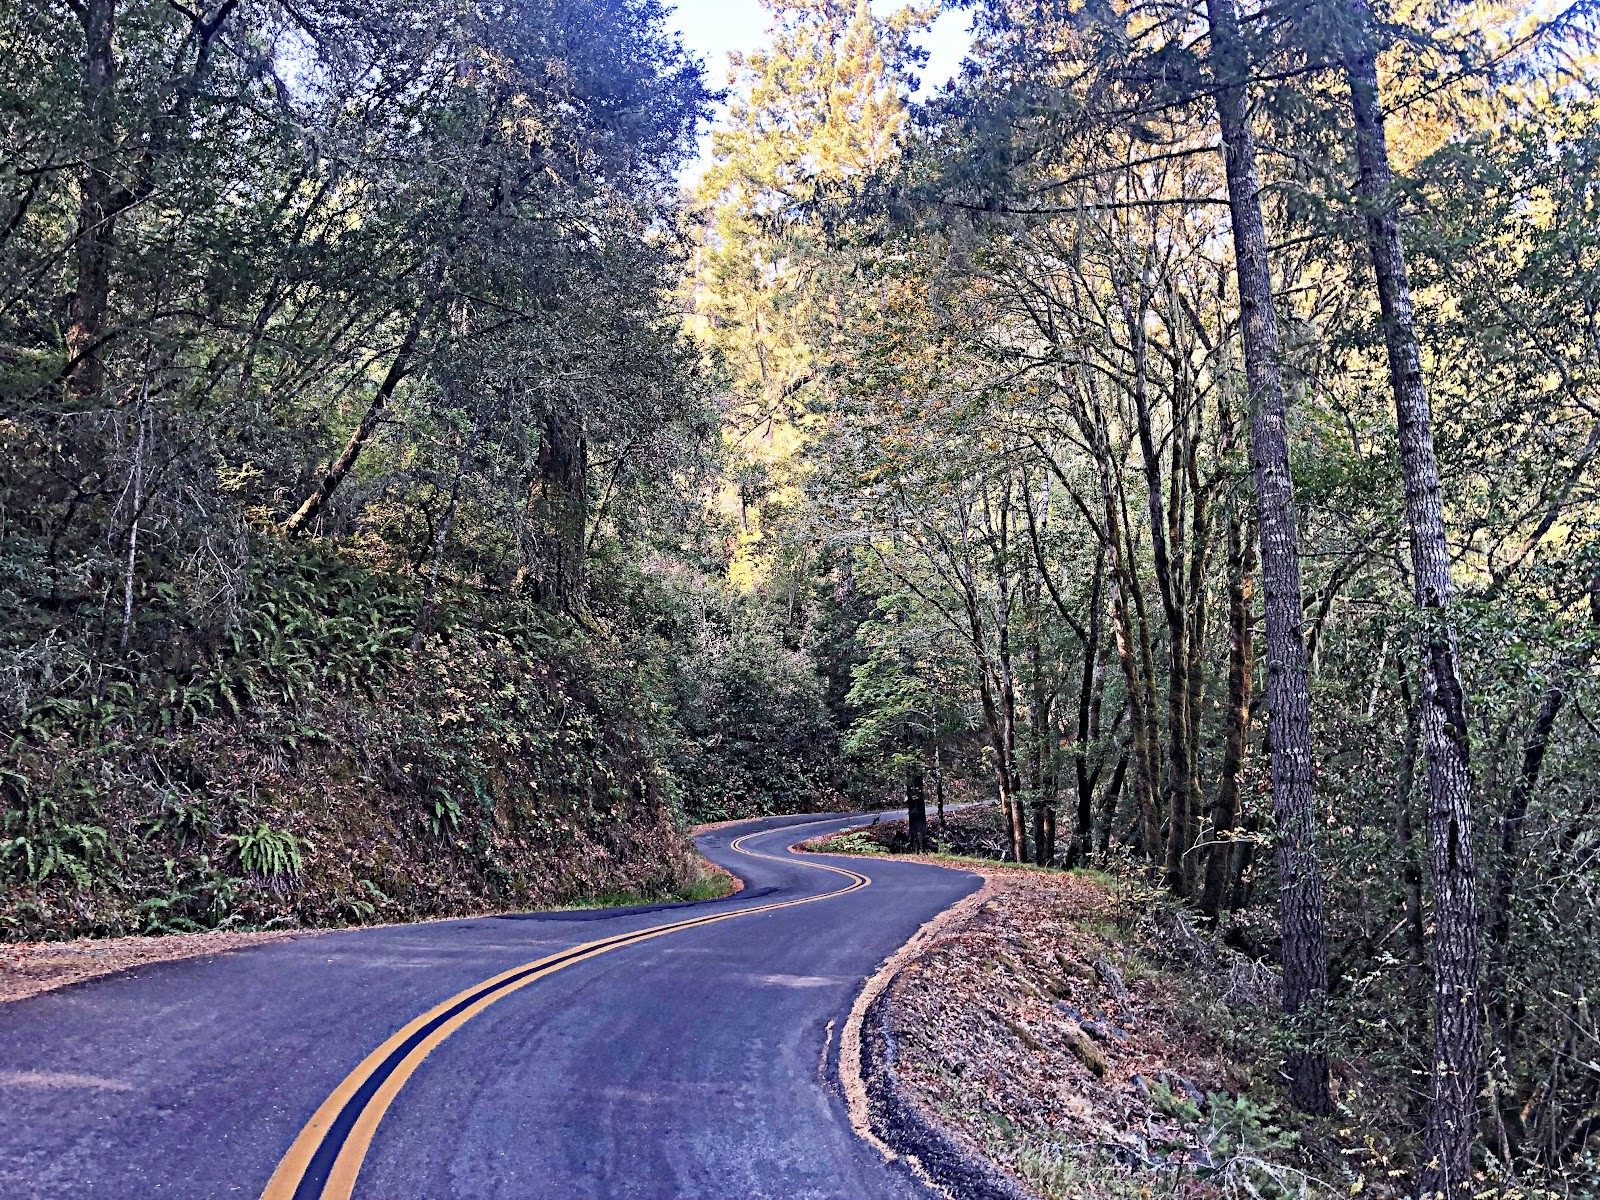 Bike climb Mt. Tamalpais from Alpine Dam - road surrounded by redwood trees